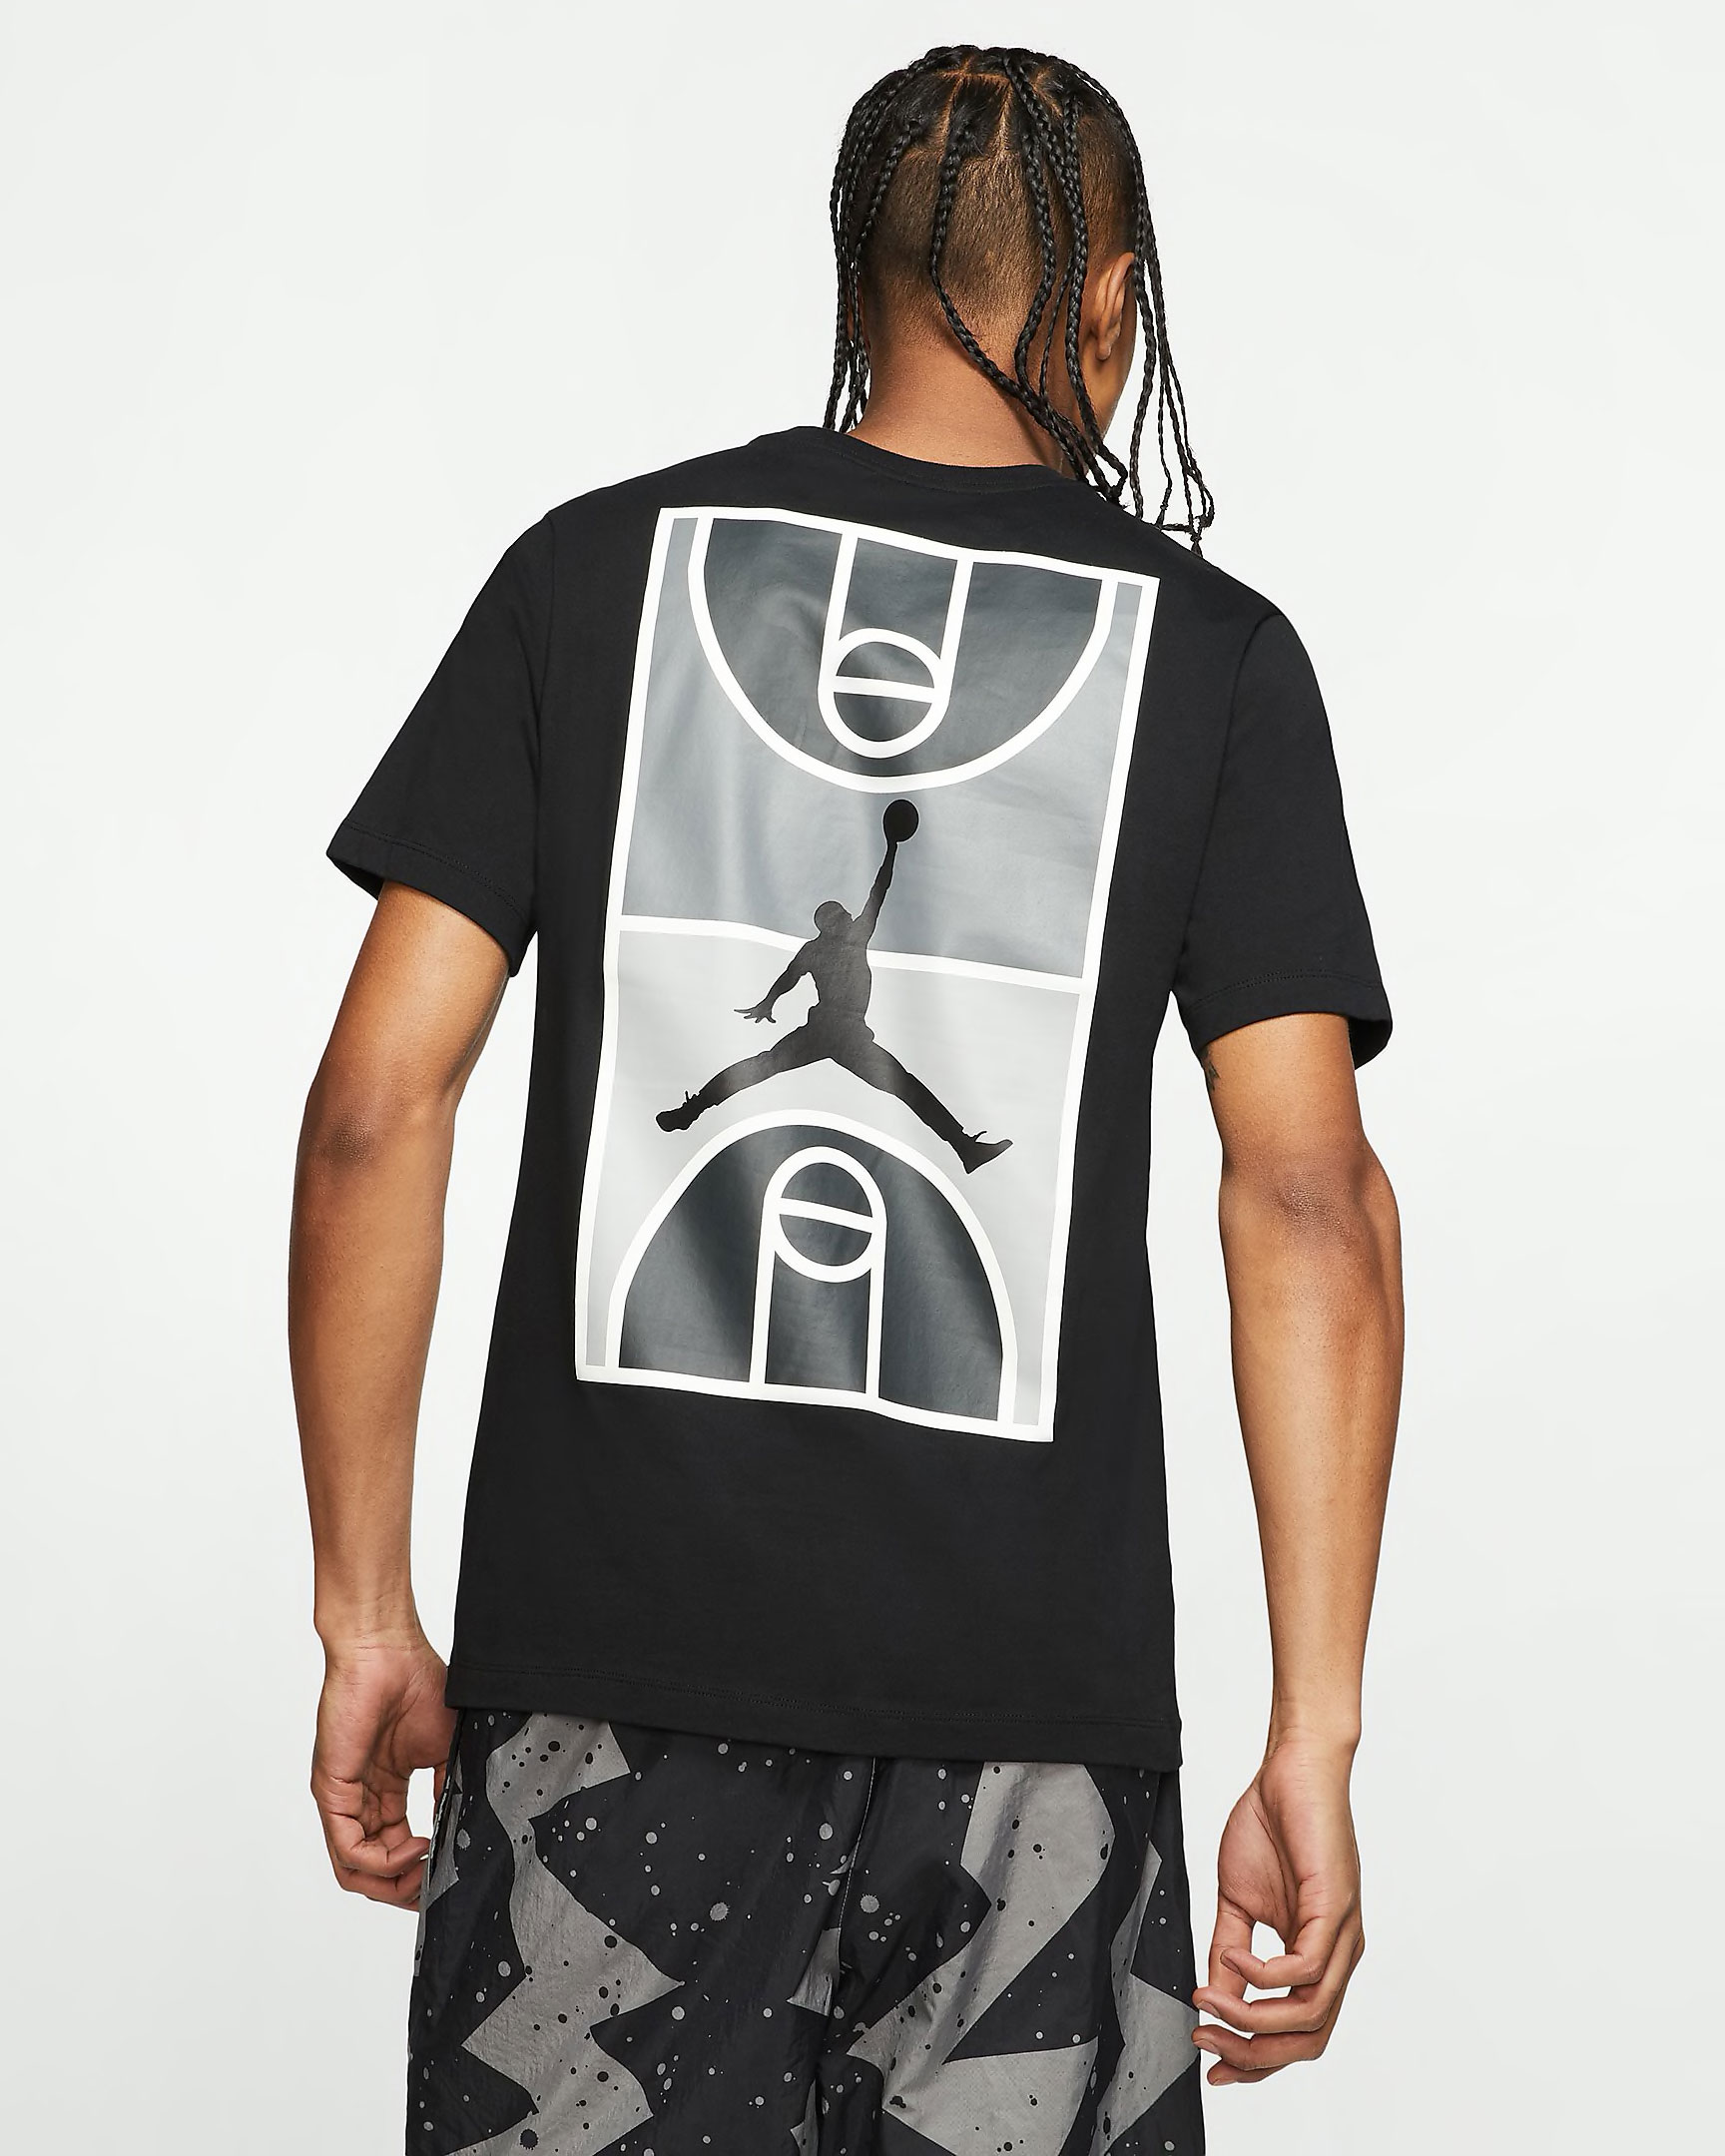 neon-jordan-4-air-max-95-tee-shirt-match-2